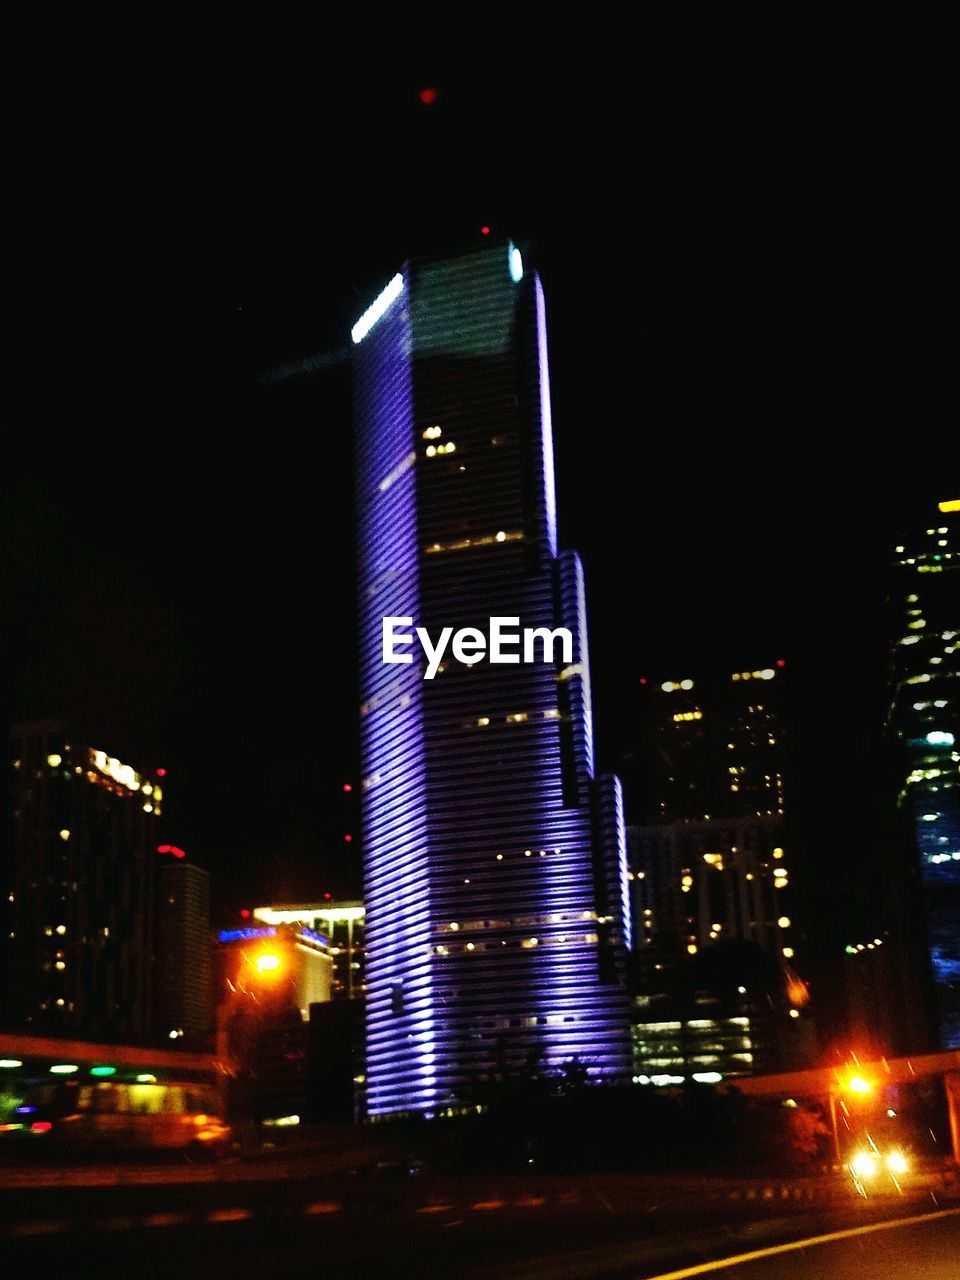 illuminated, night, building exterior, architecture, built structure, tall - high, city, skyscraper, no people, modern, outdoors, cityscape, sky